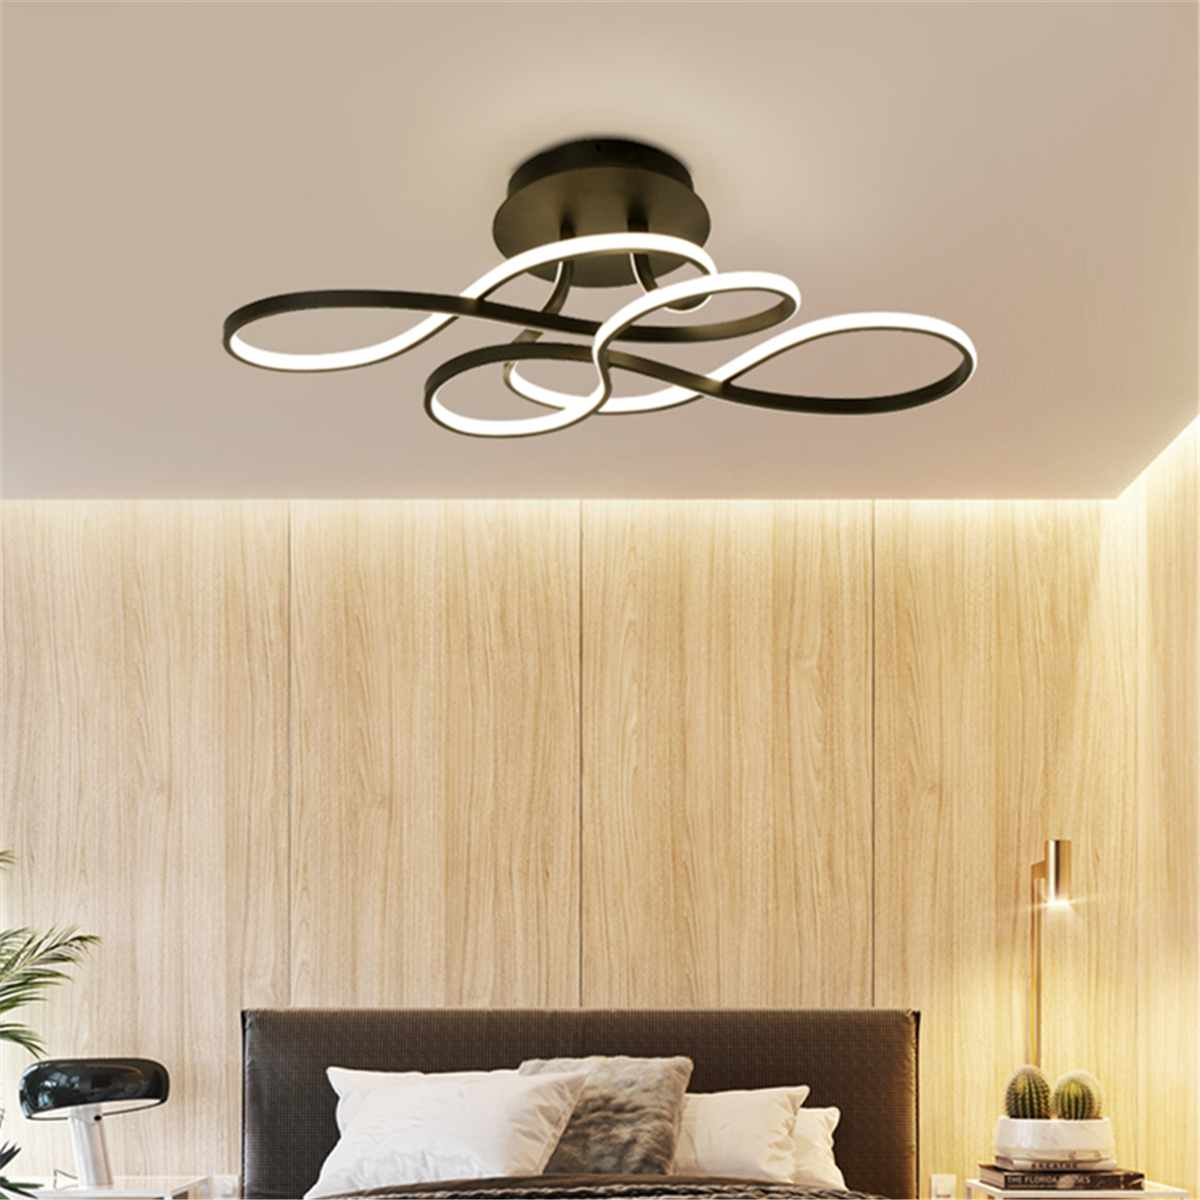 Lights Ceiling Minimalist Acrylic Led Ceiling Lights For Living Room Bedroom Ceiling Lamp Warm White Lamp Remote Control Indoor Lighting